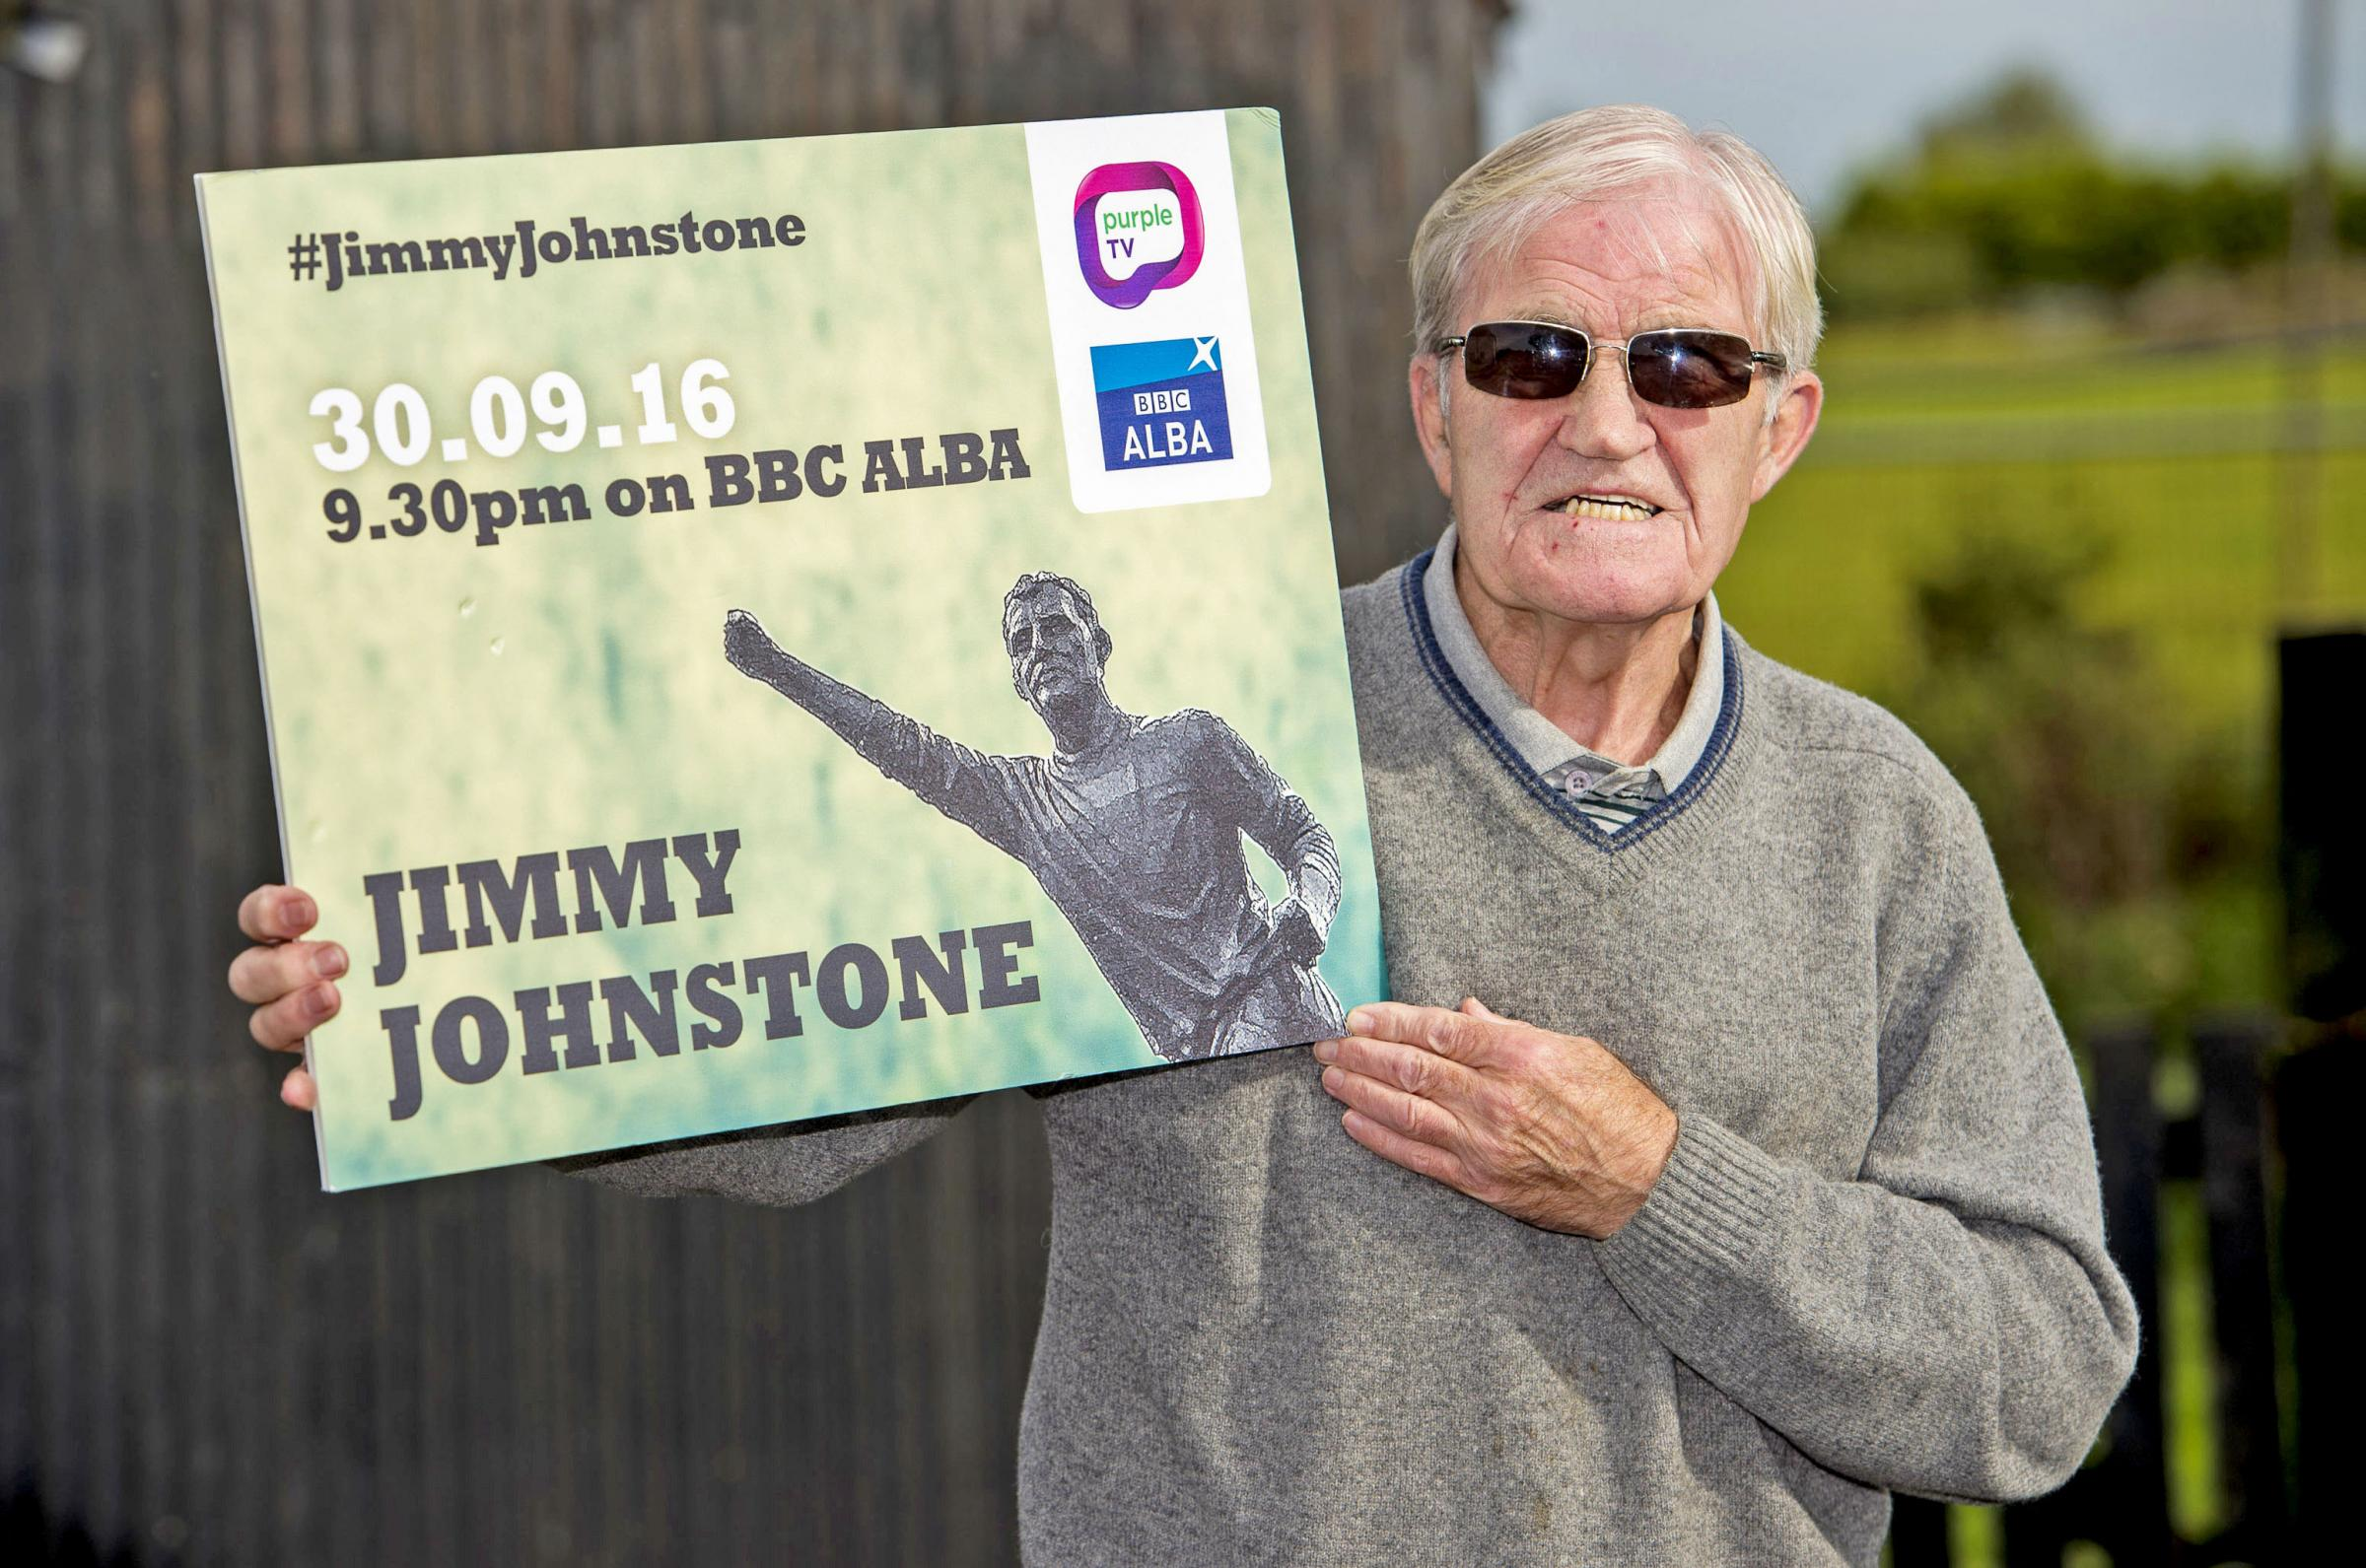 Bertie Auld Celtic may not have players like Jimmy Johnstone but